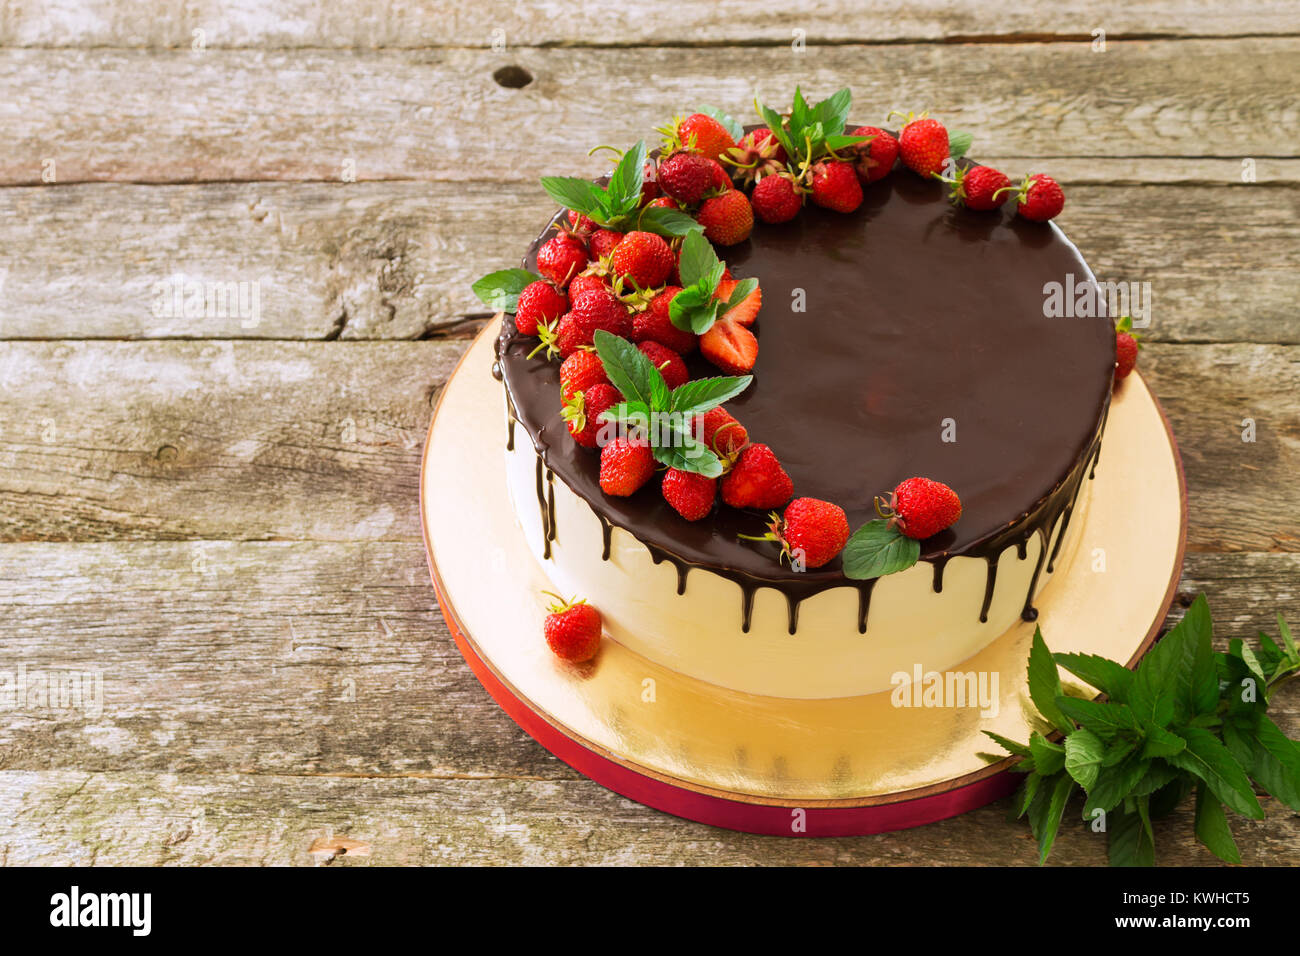 Beautiful festive cake covered with melted chocolate with strawberries and mint leaves - Stock Image